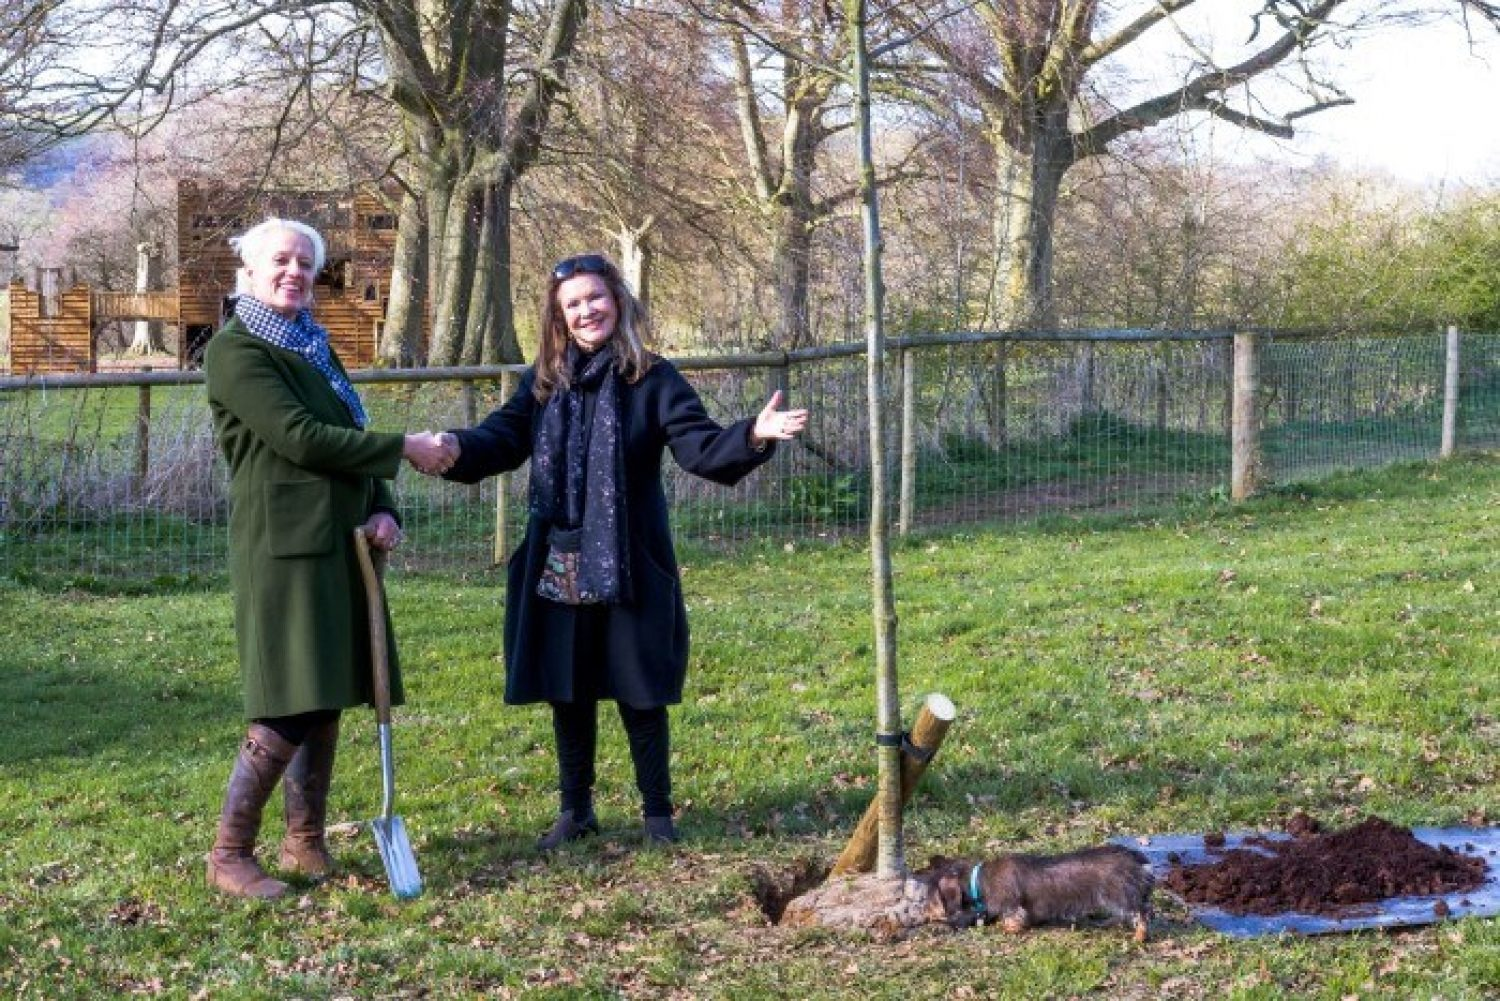 Lady Ashcombe and Nell Gifford planting a tree at Giffords